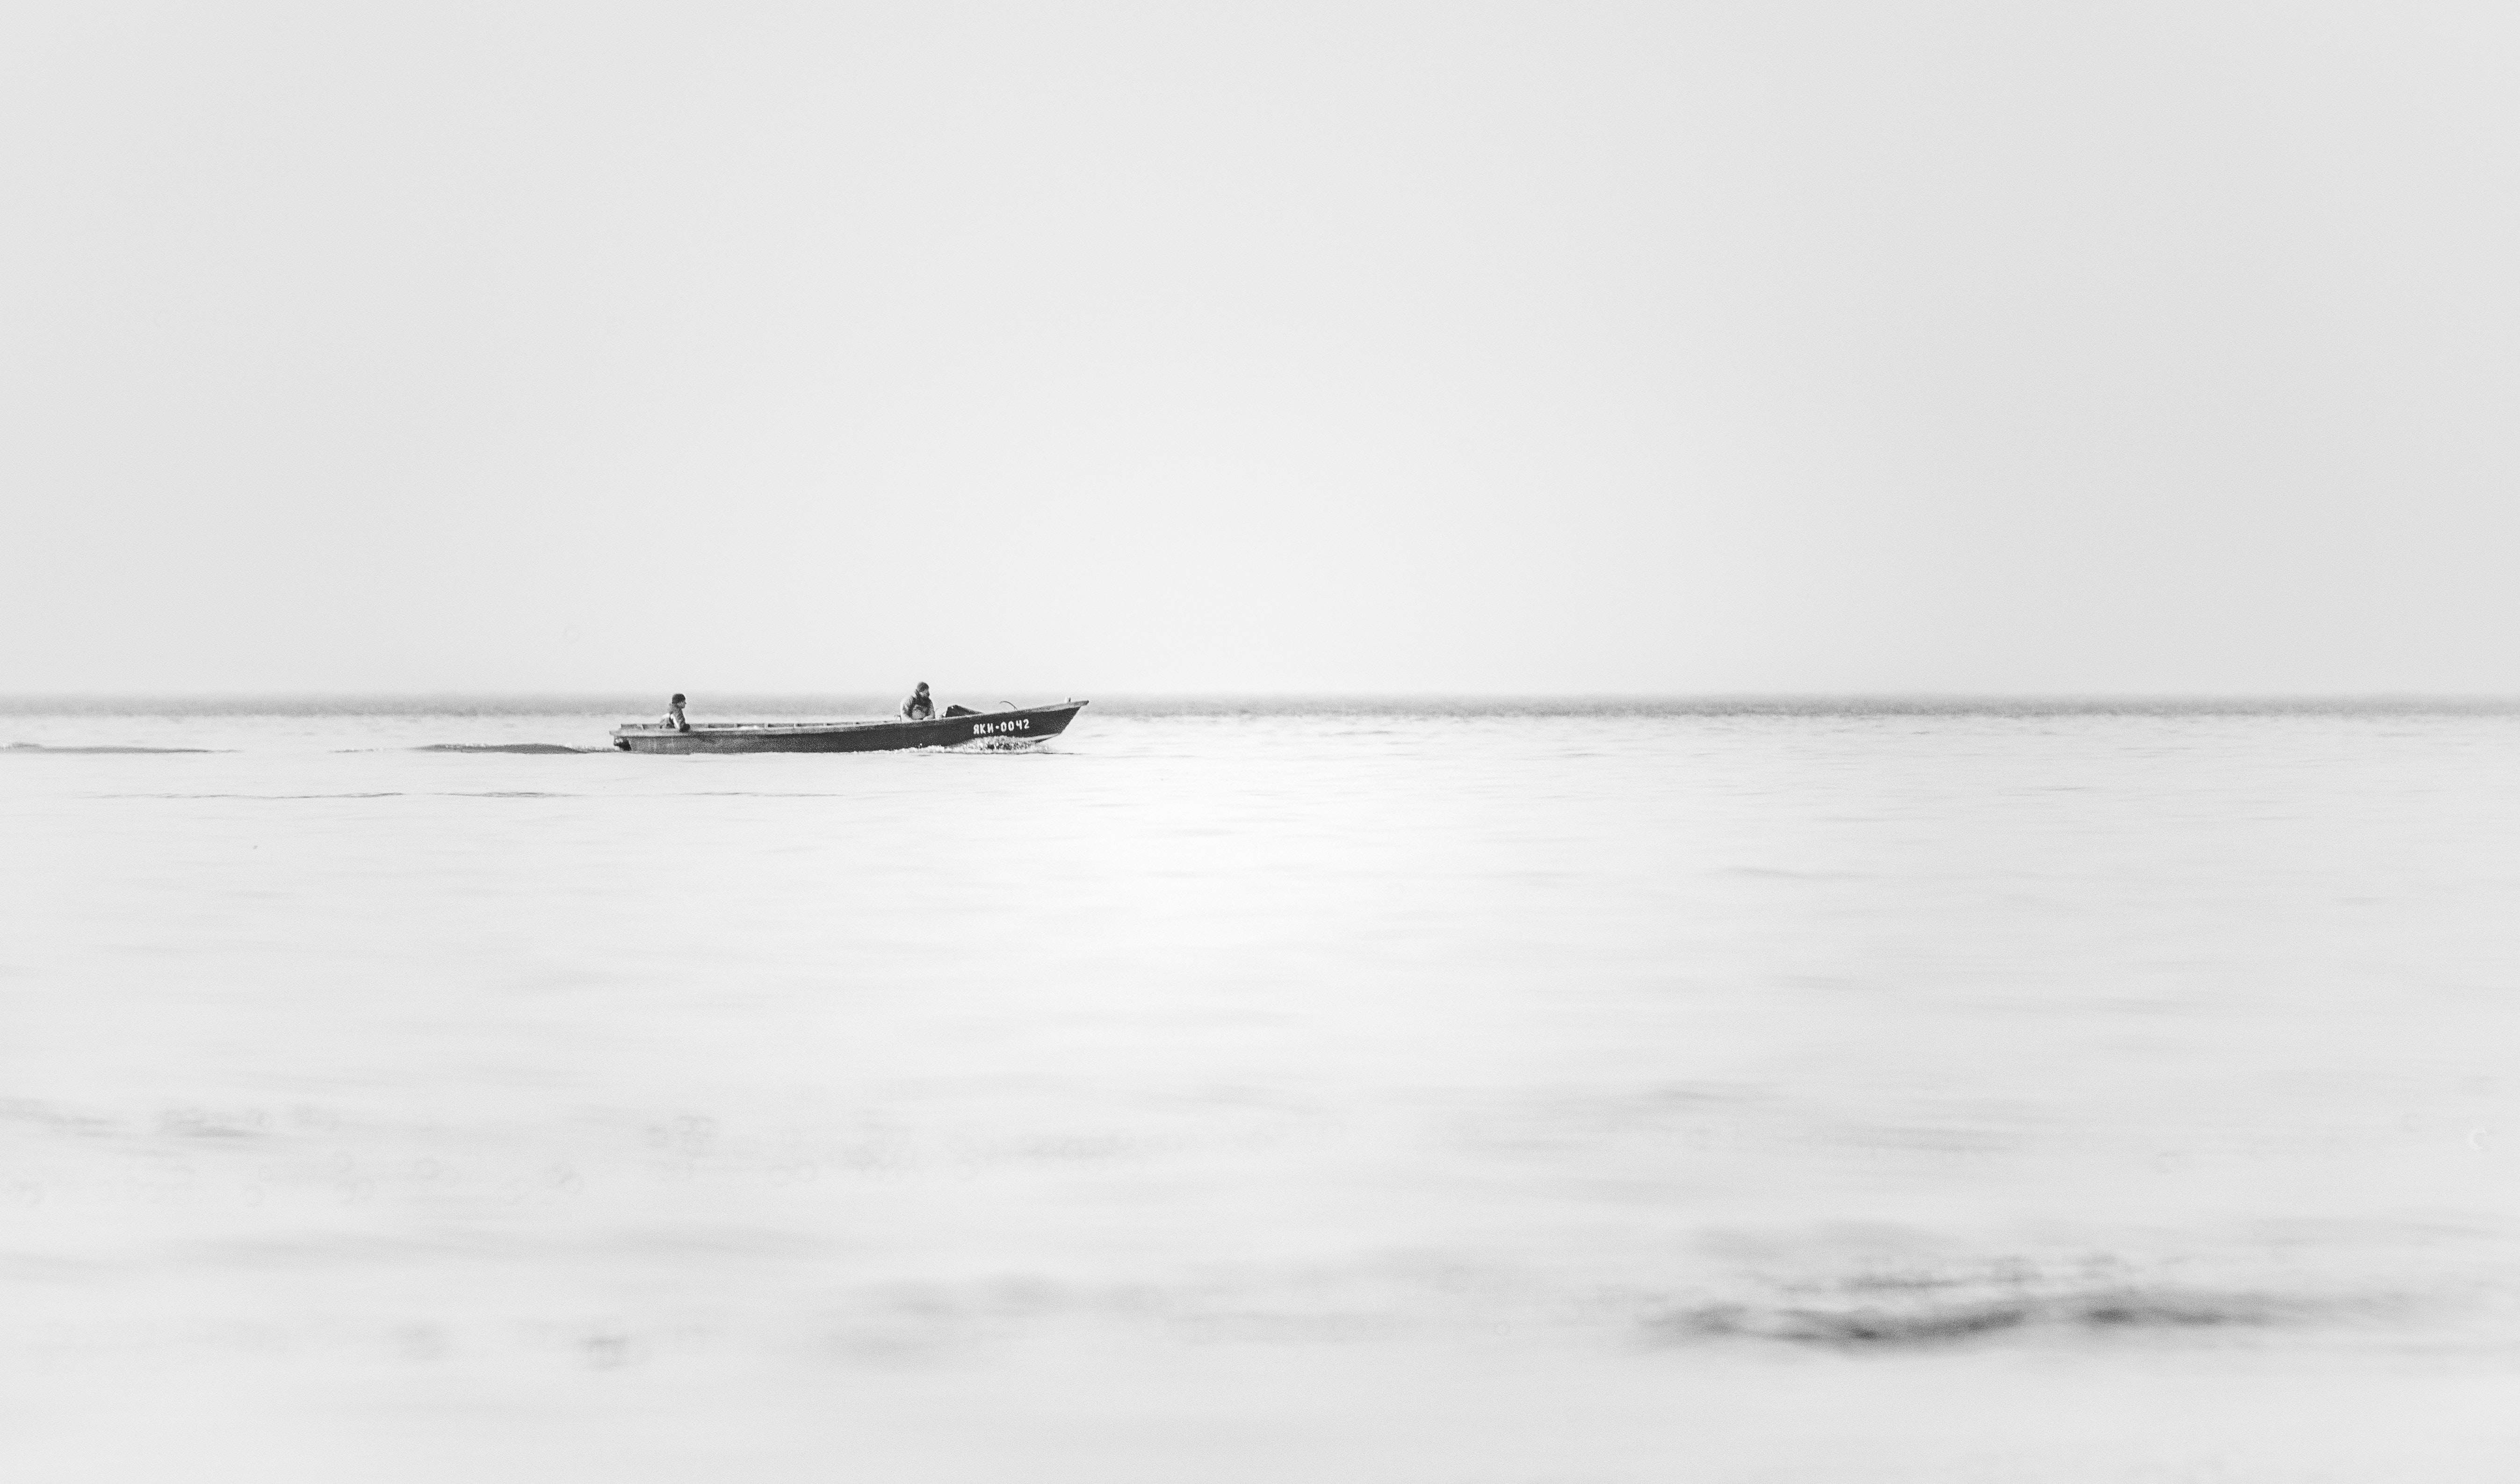 grayscale photography of boat on body of water